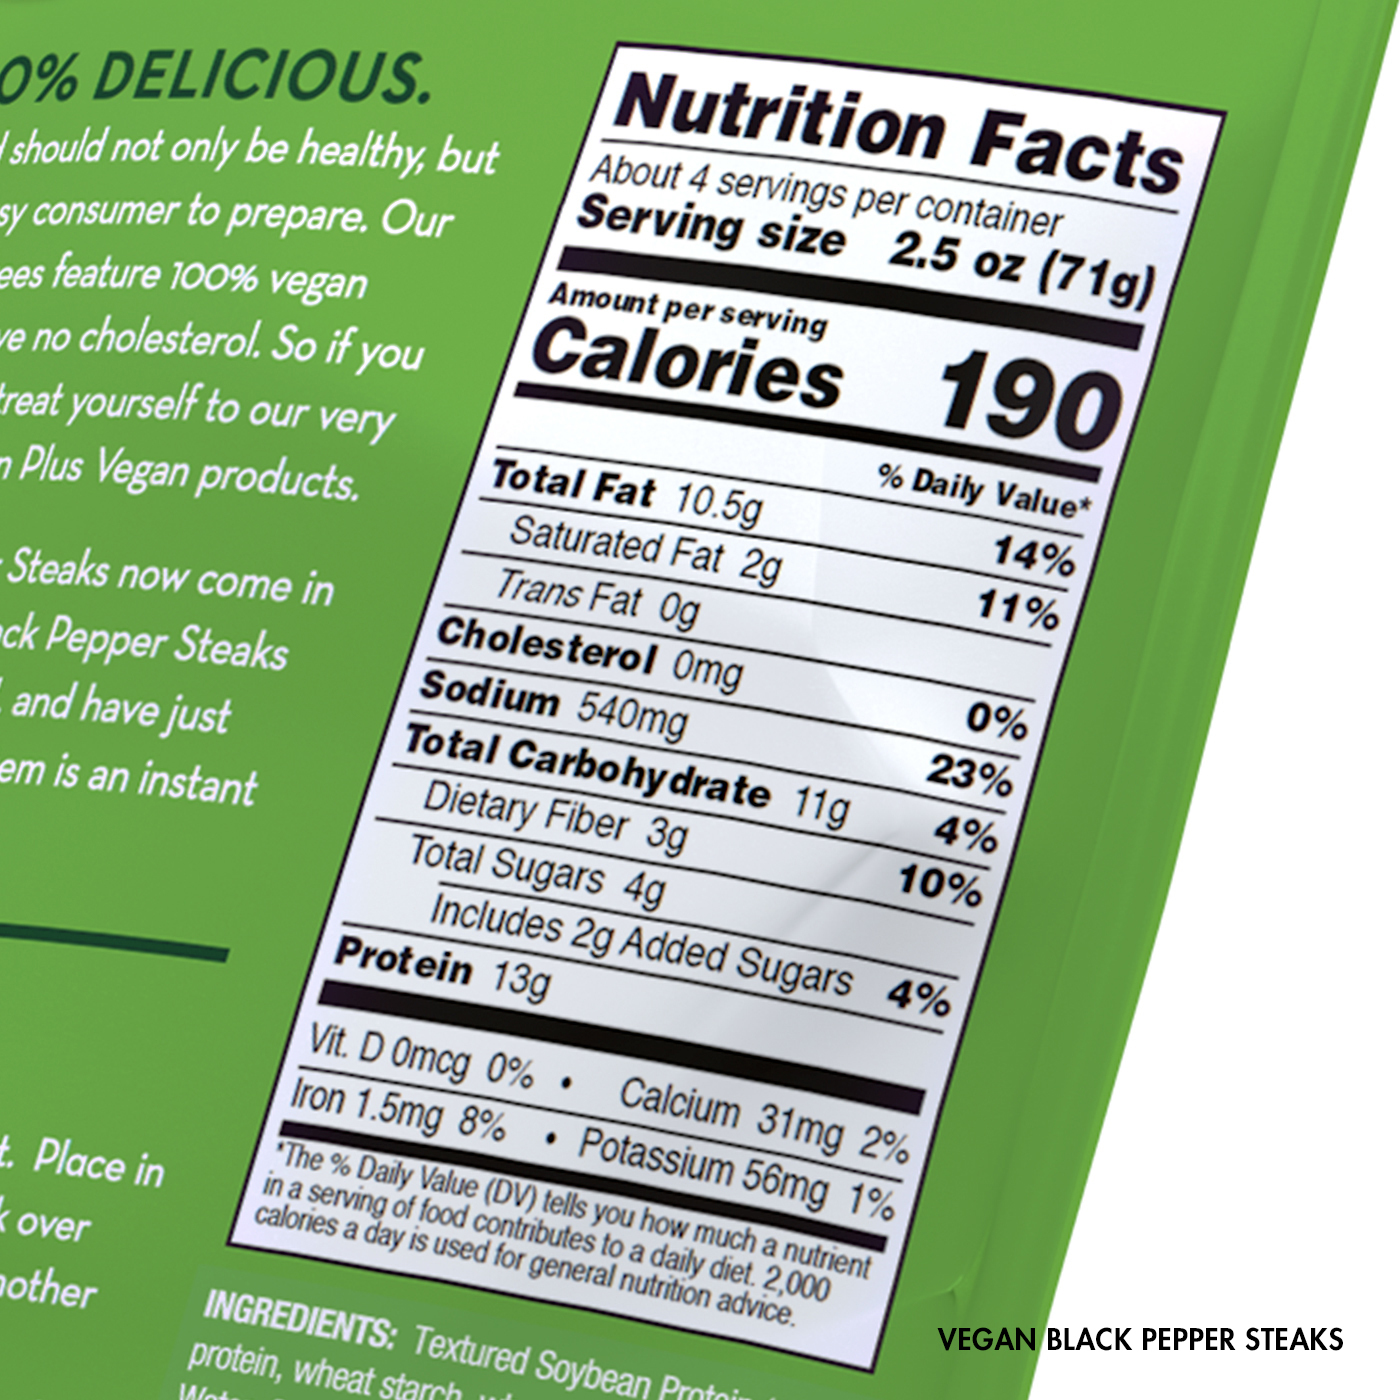 Vegan Black Pepper Steak Nutrition Facts